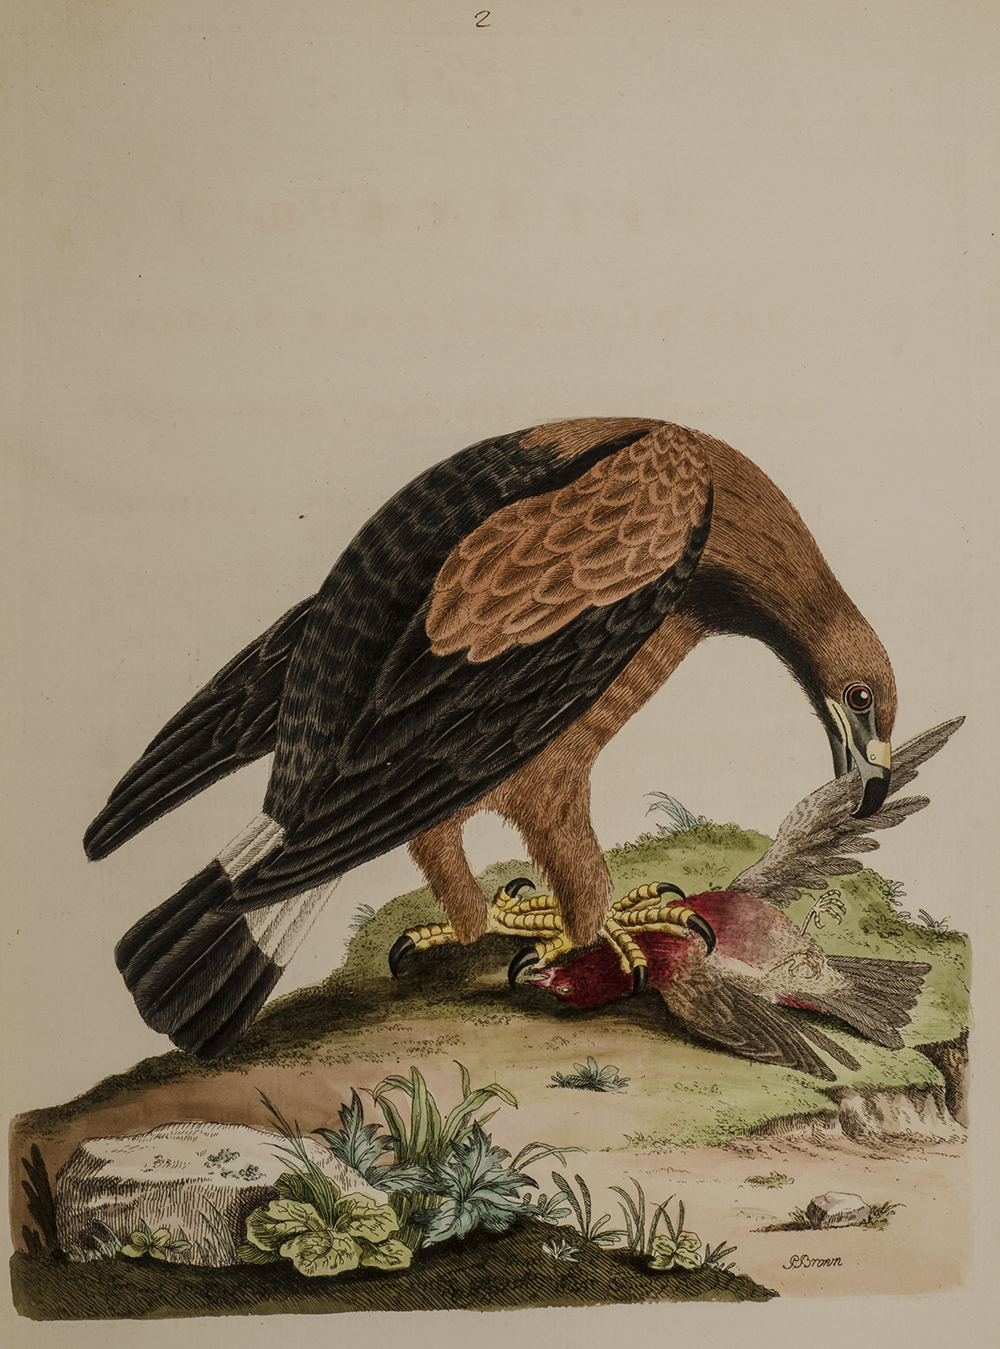 BROWN, PETER - Nouvelles Illustrations de Zoologie / New Illustrations of Zoology